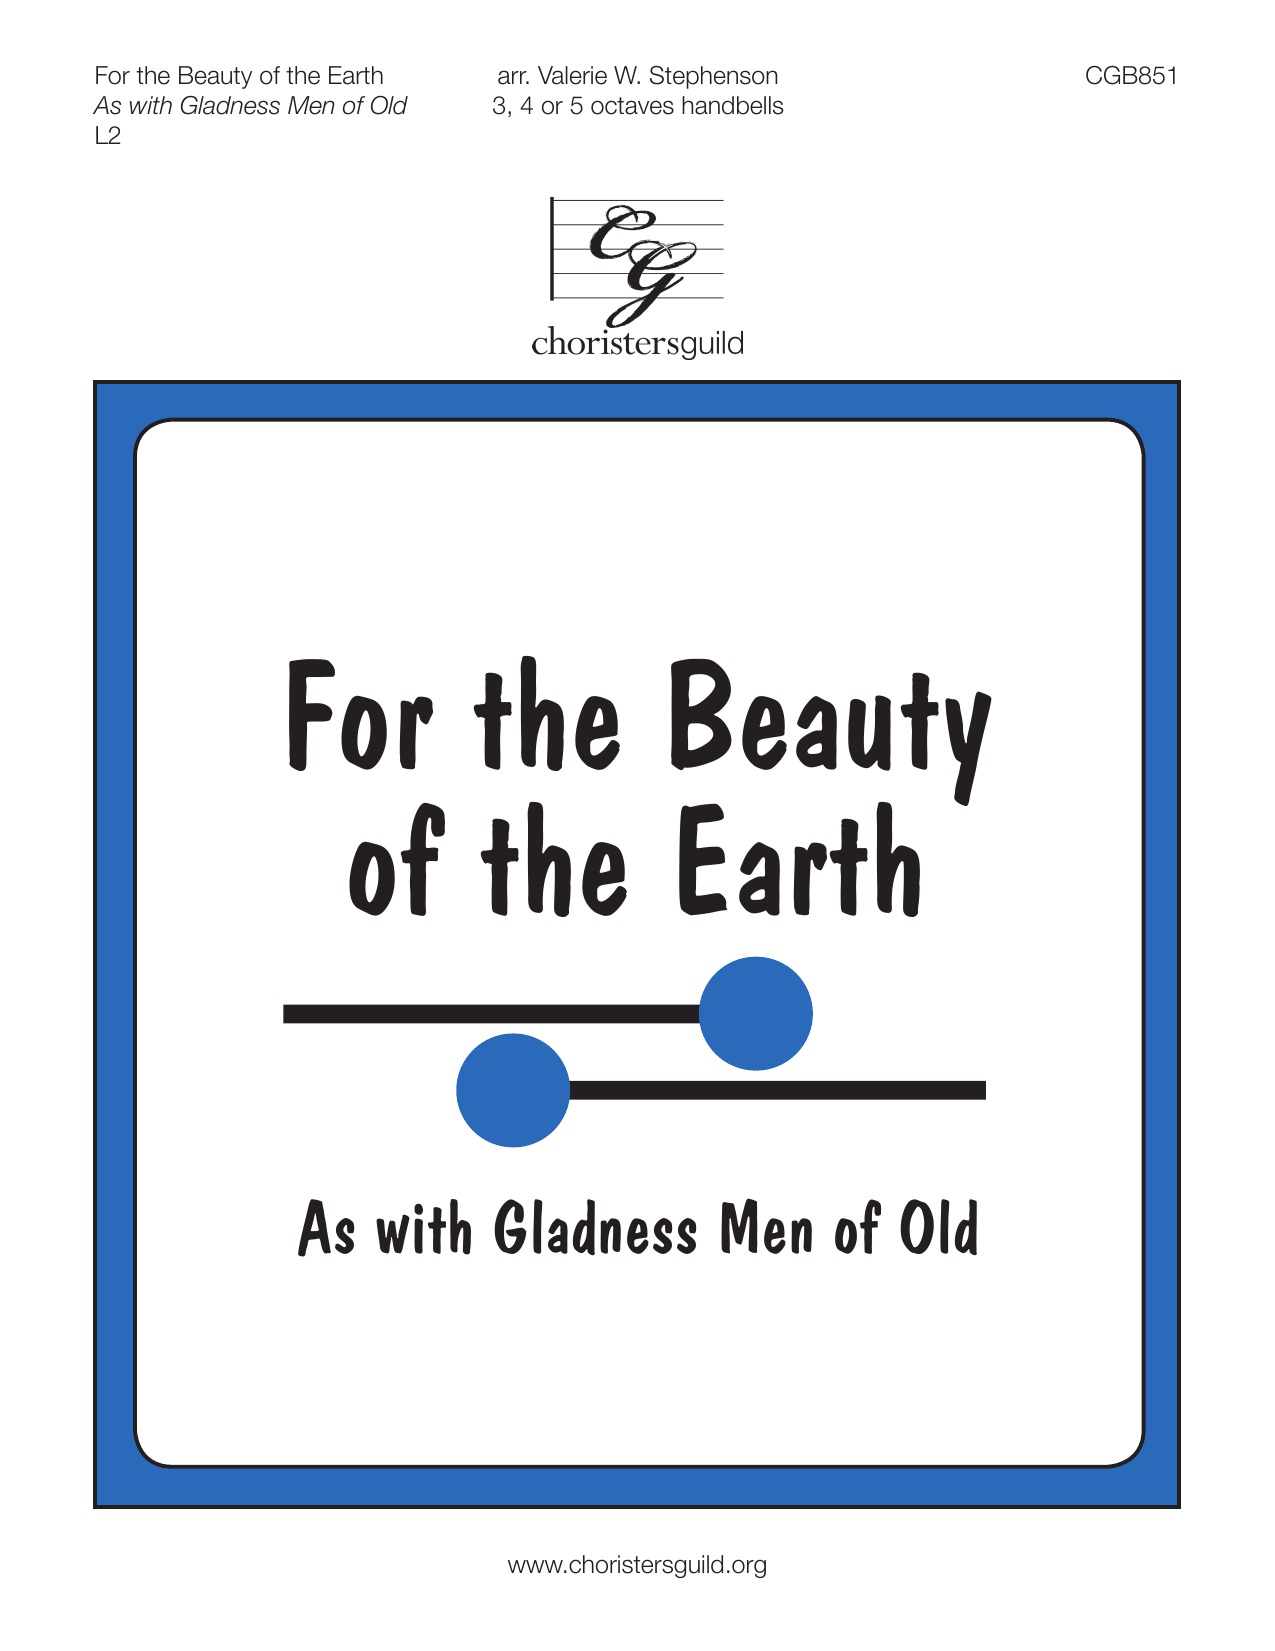 For the Beauty of the Earth (As with Gladness Men of Old)